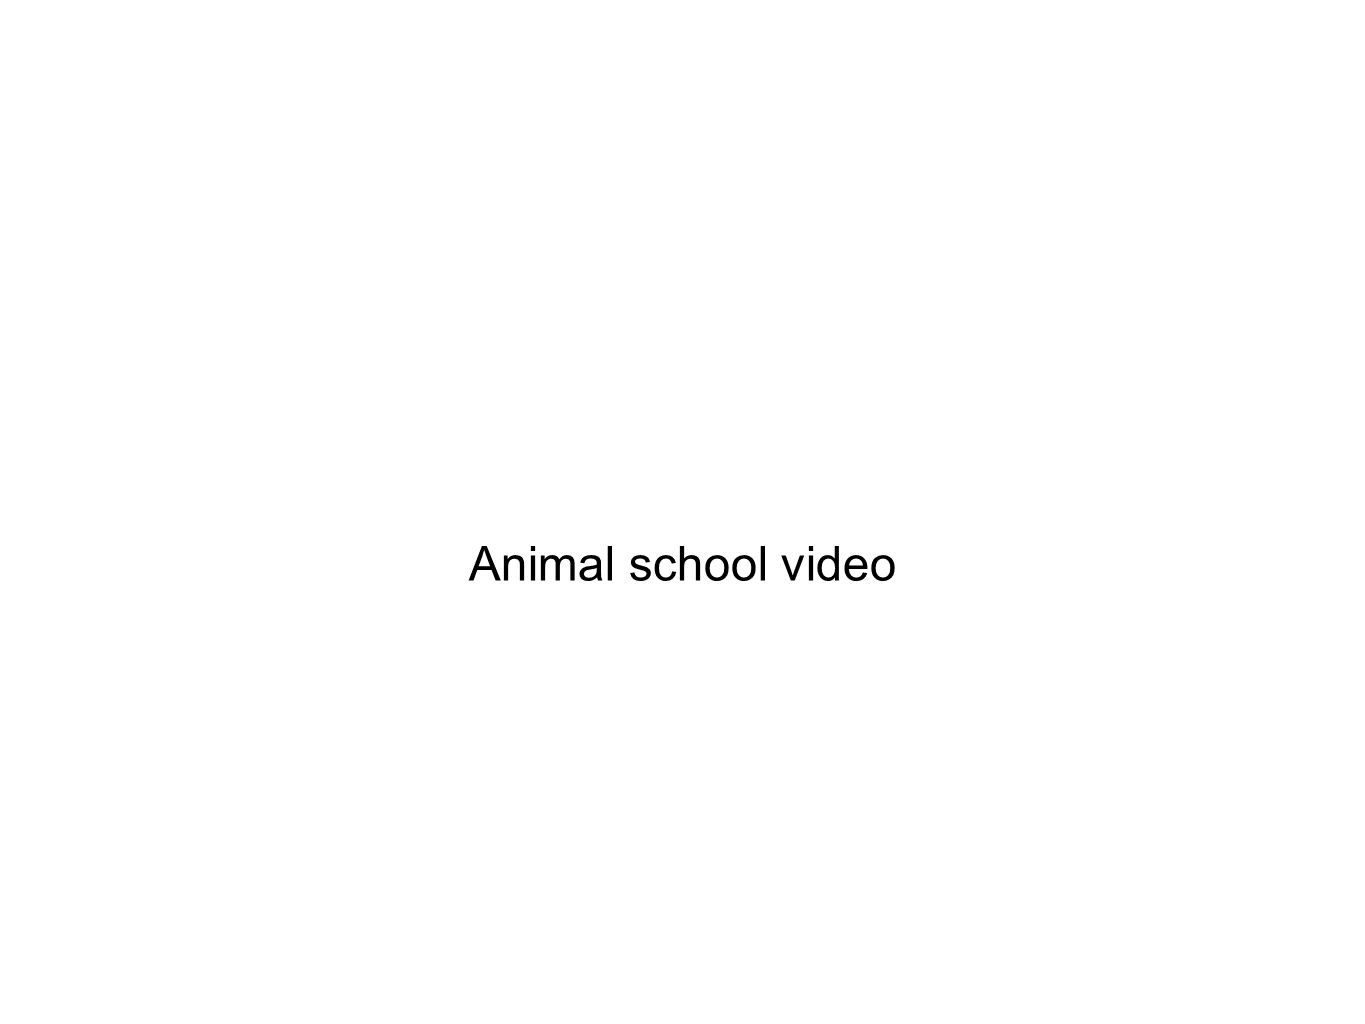 Animal school video